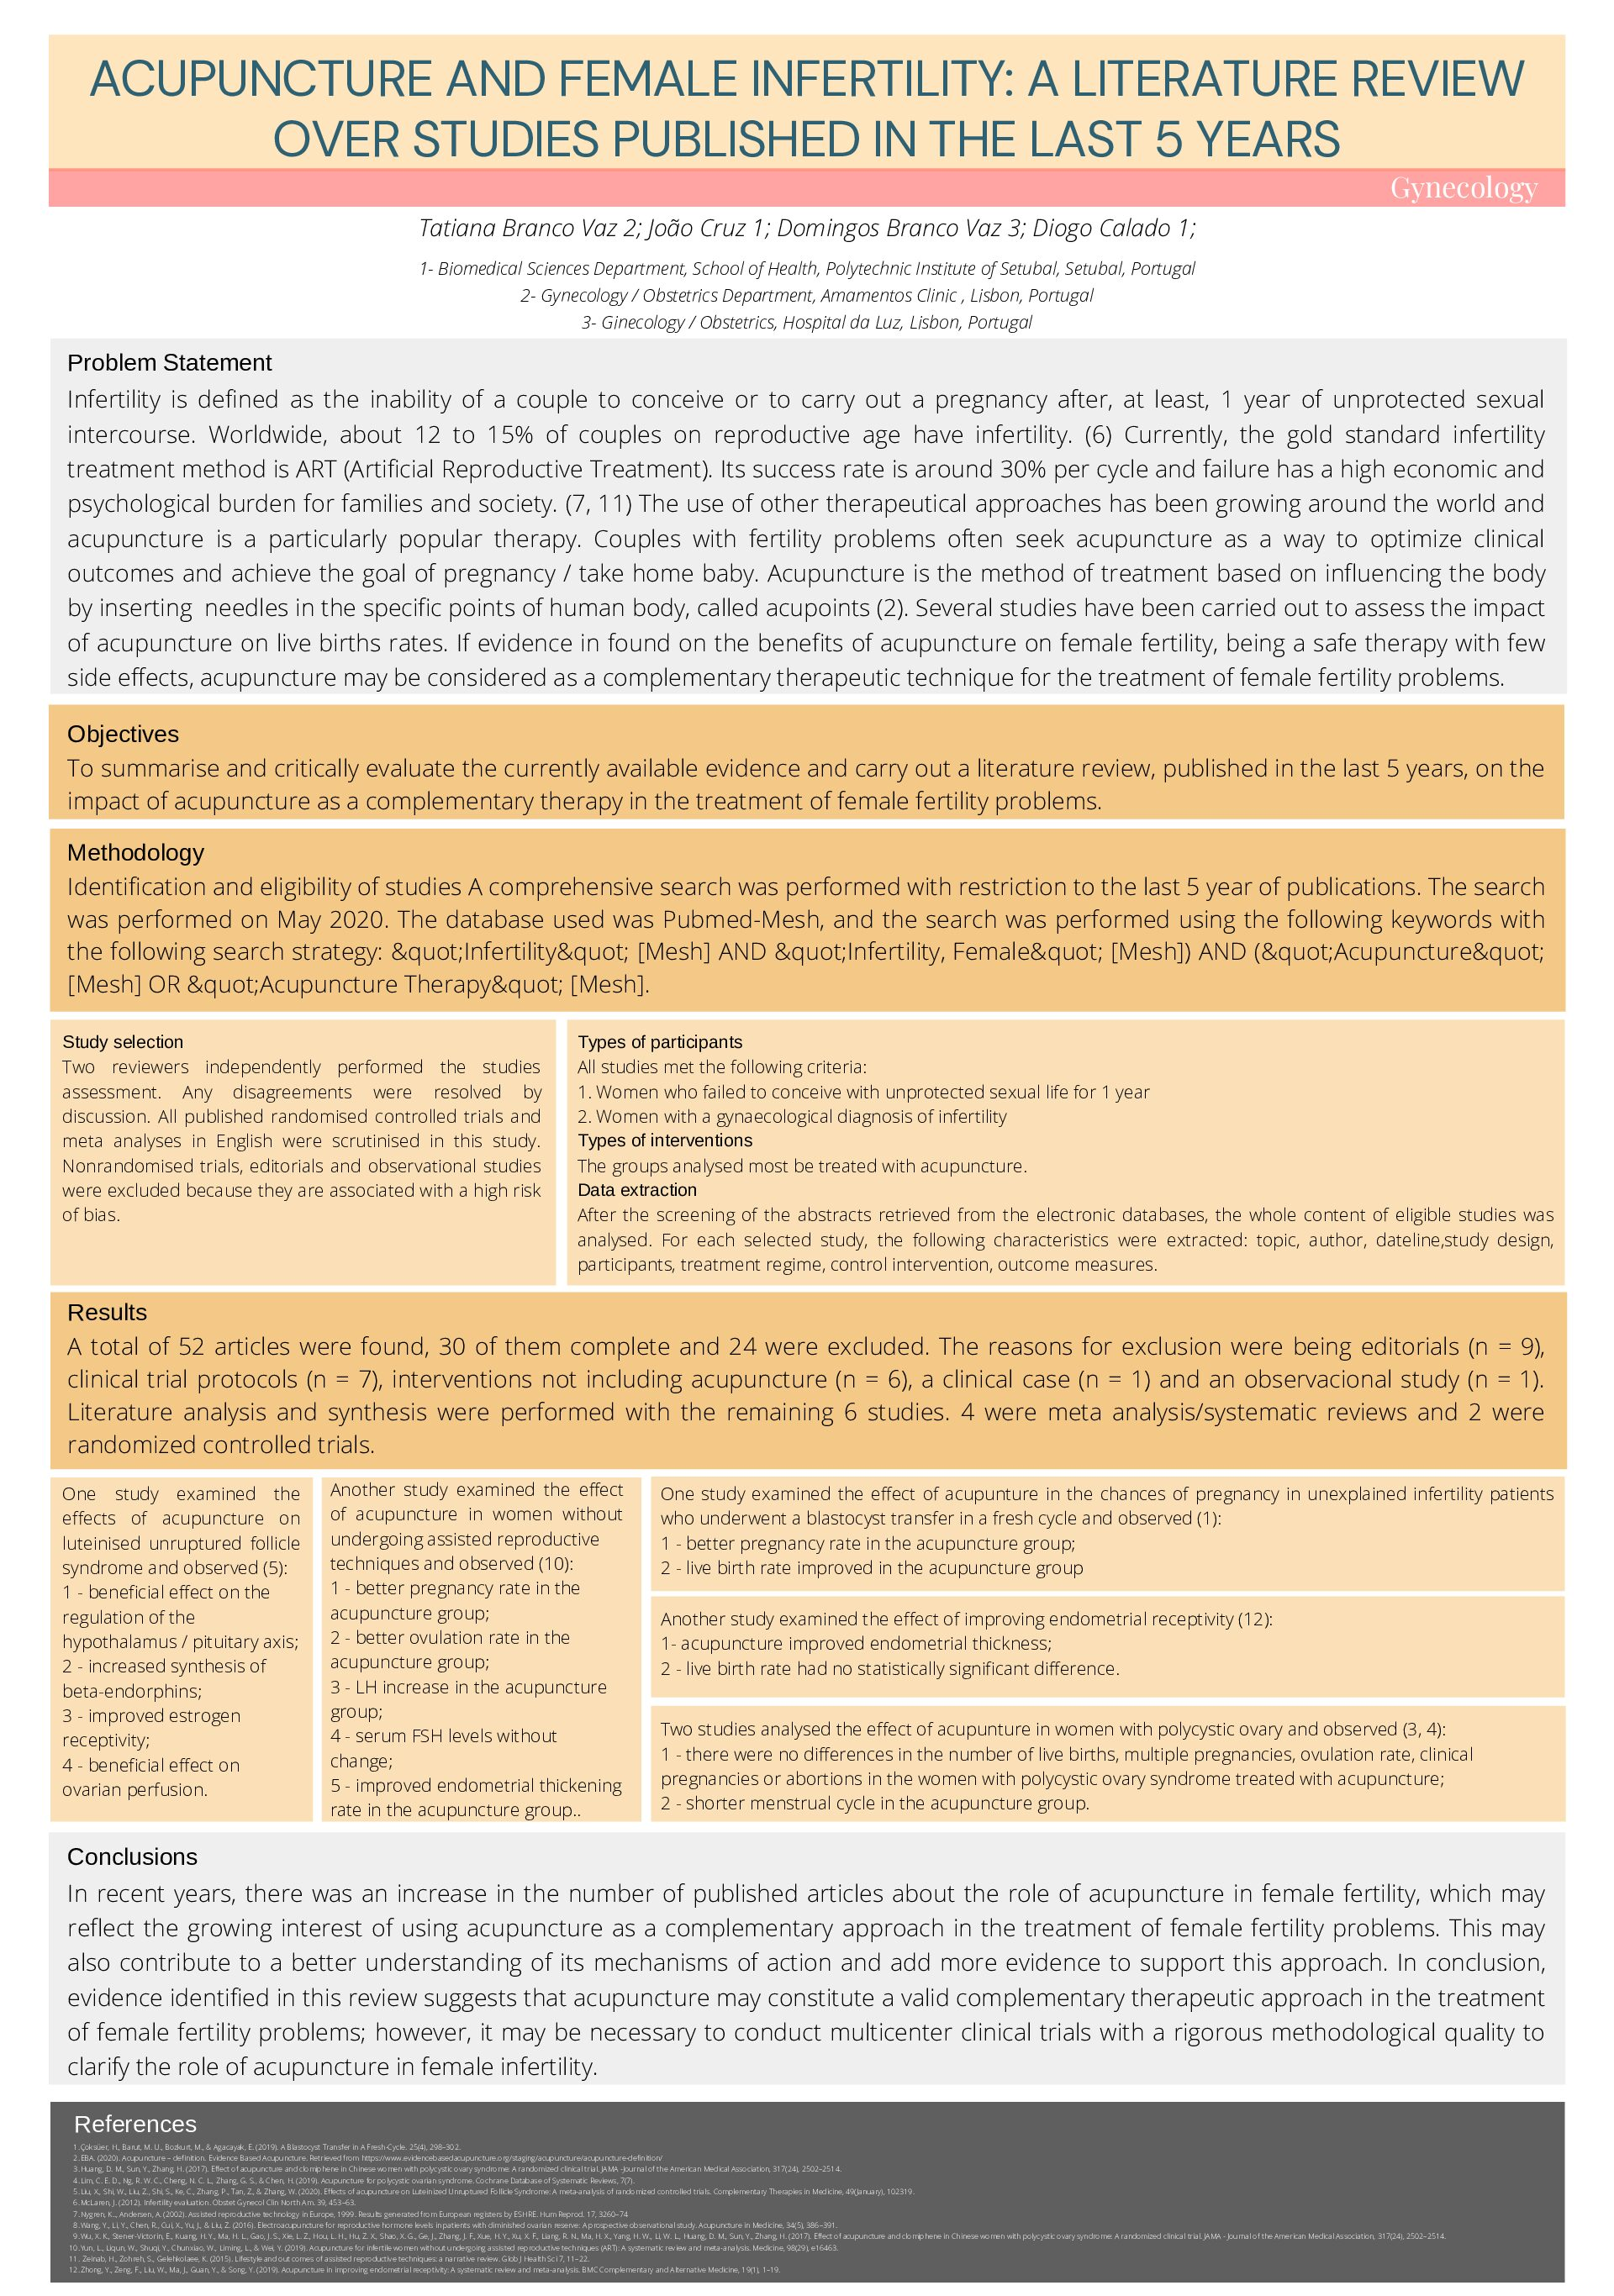 Acupuncture and female infertility: A literature review over studies published in the last 5 years